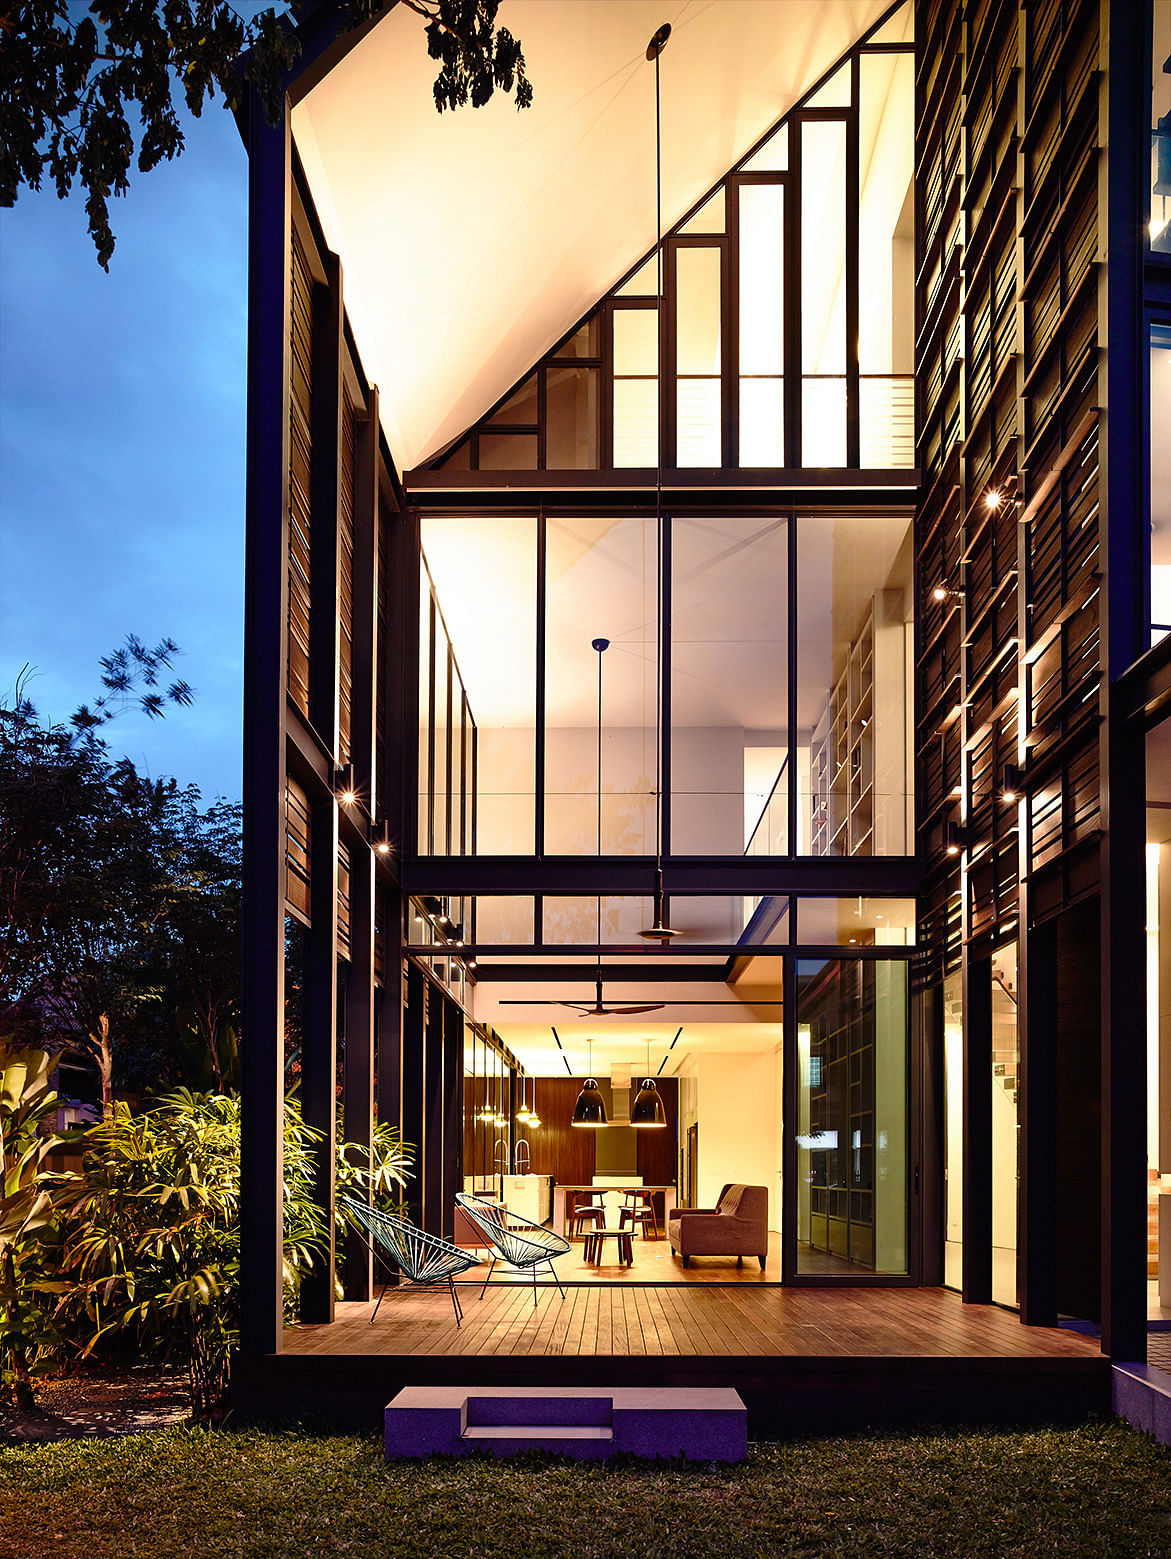 House Tour: This corner terrace house enjoys privacy, natural light and ventilation thanks to its clever architecture title=